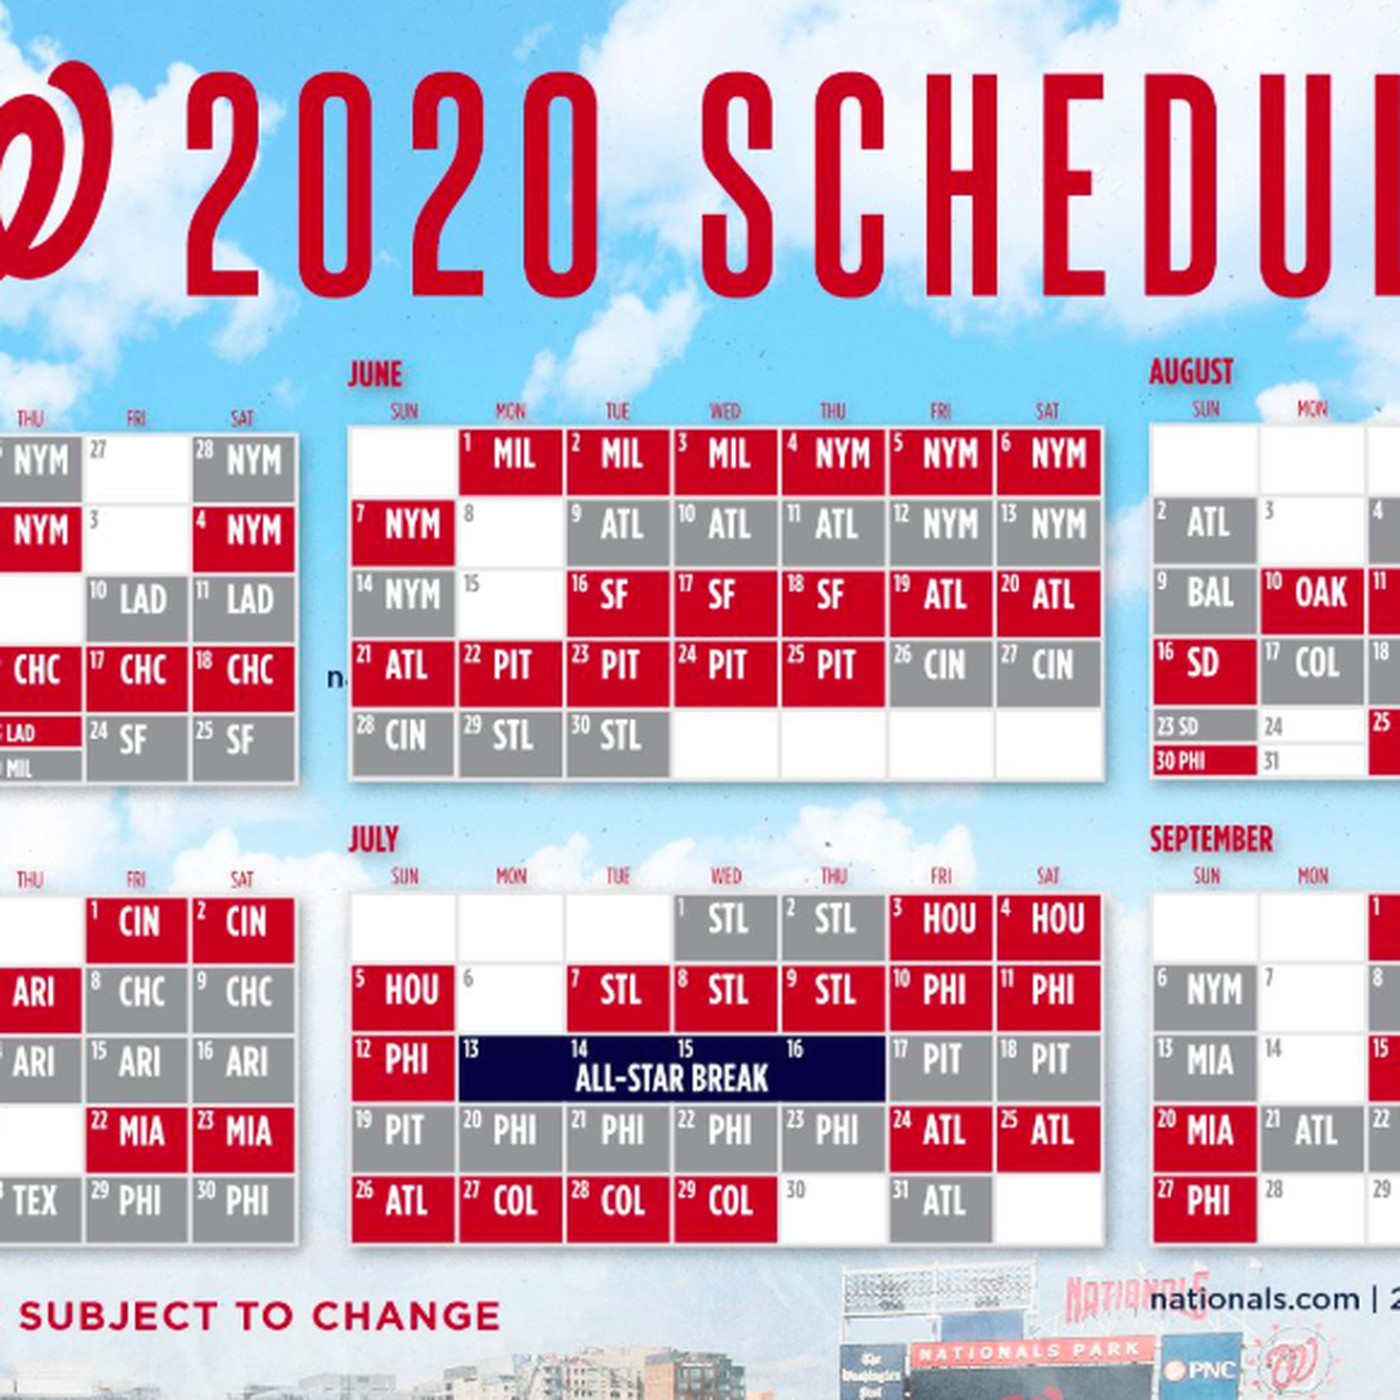 Washington Nationals' 2020 schedule released